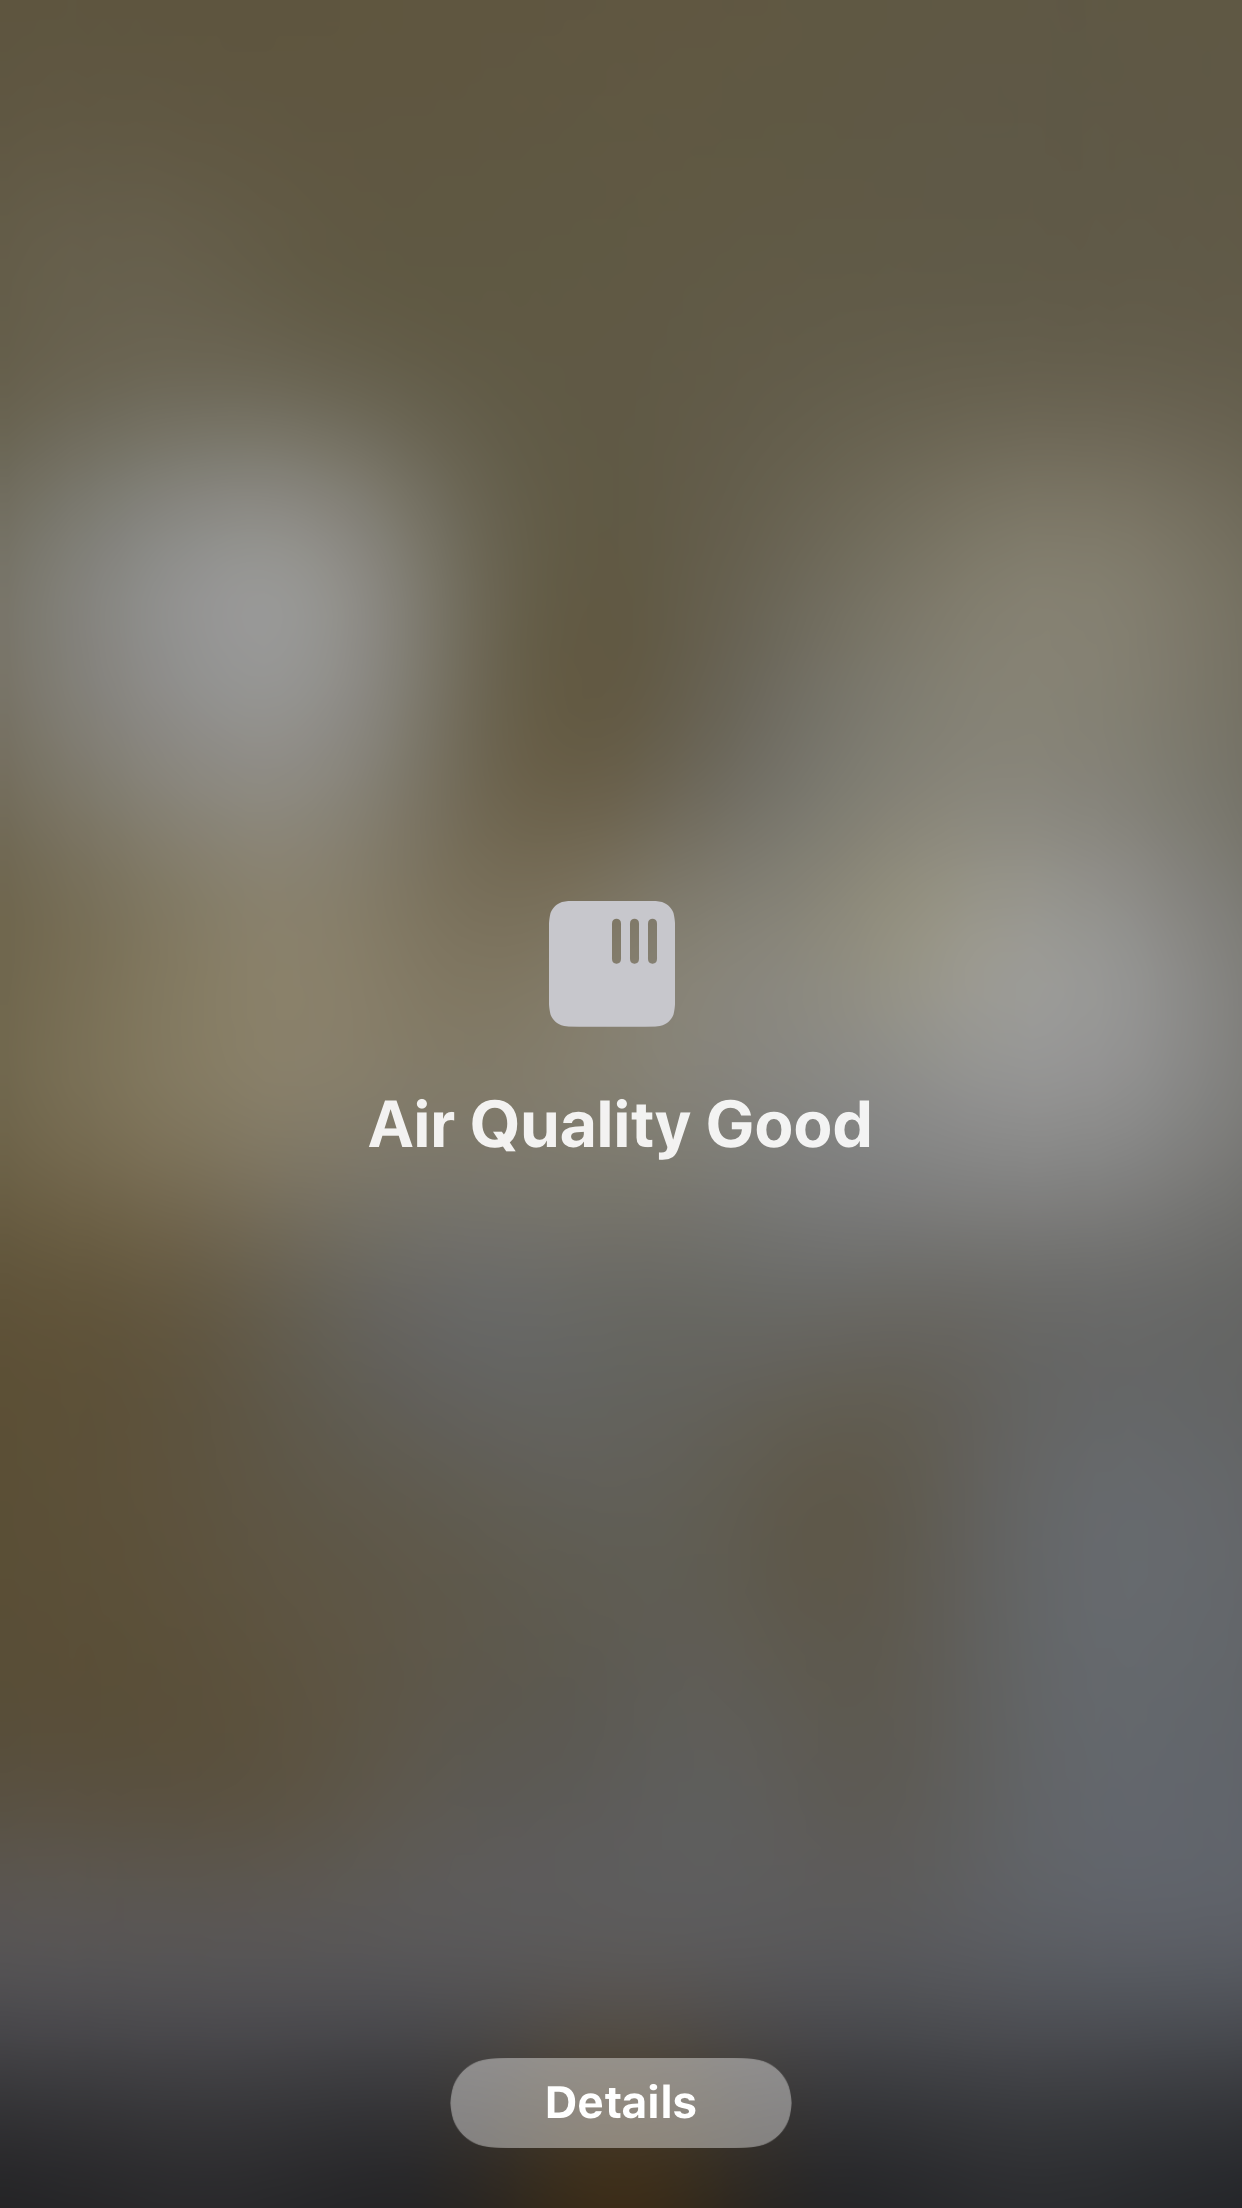 Air Quality Overview